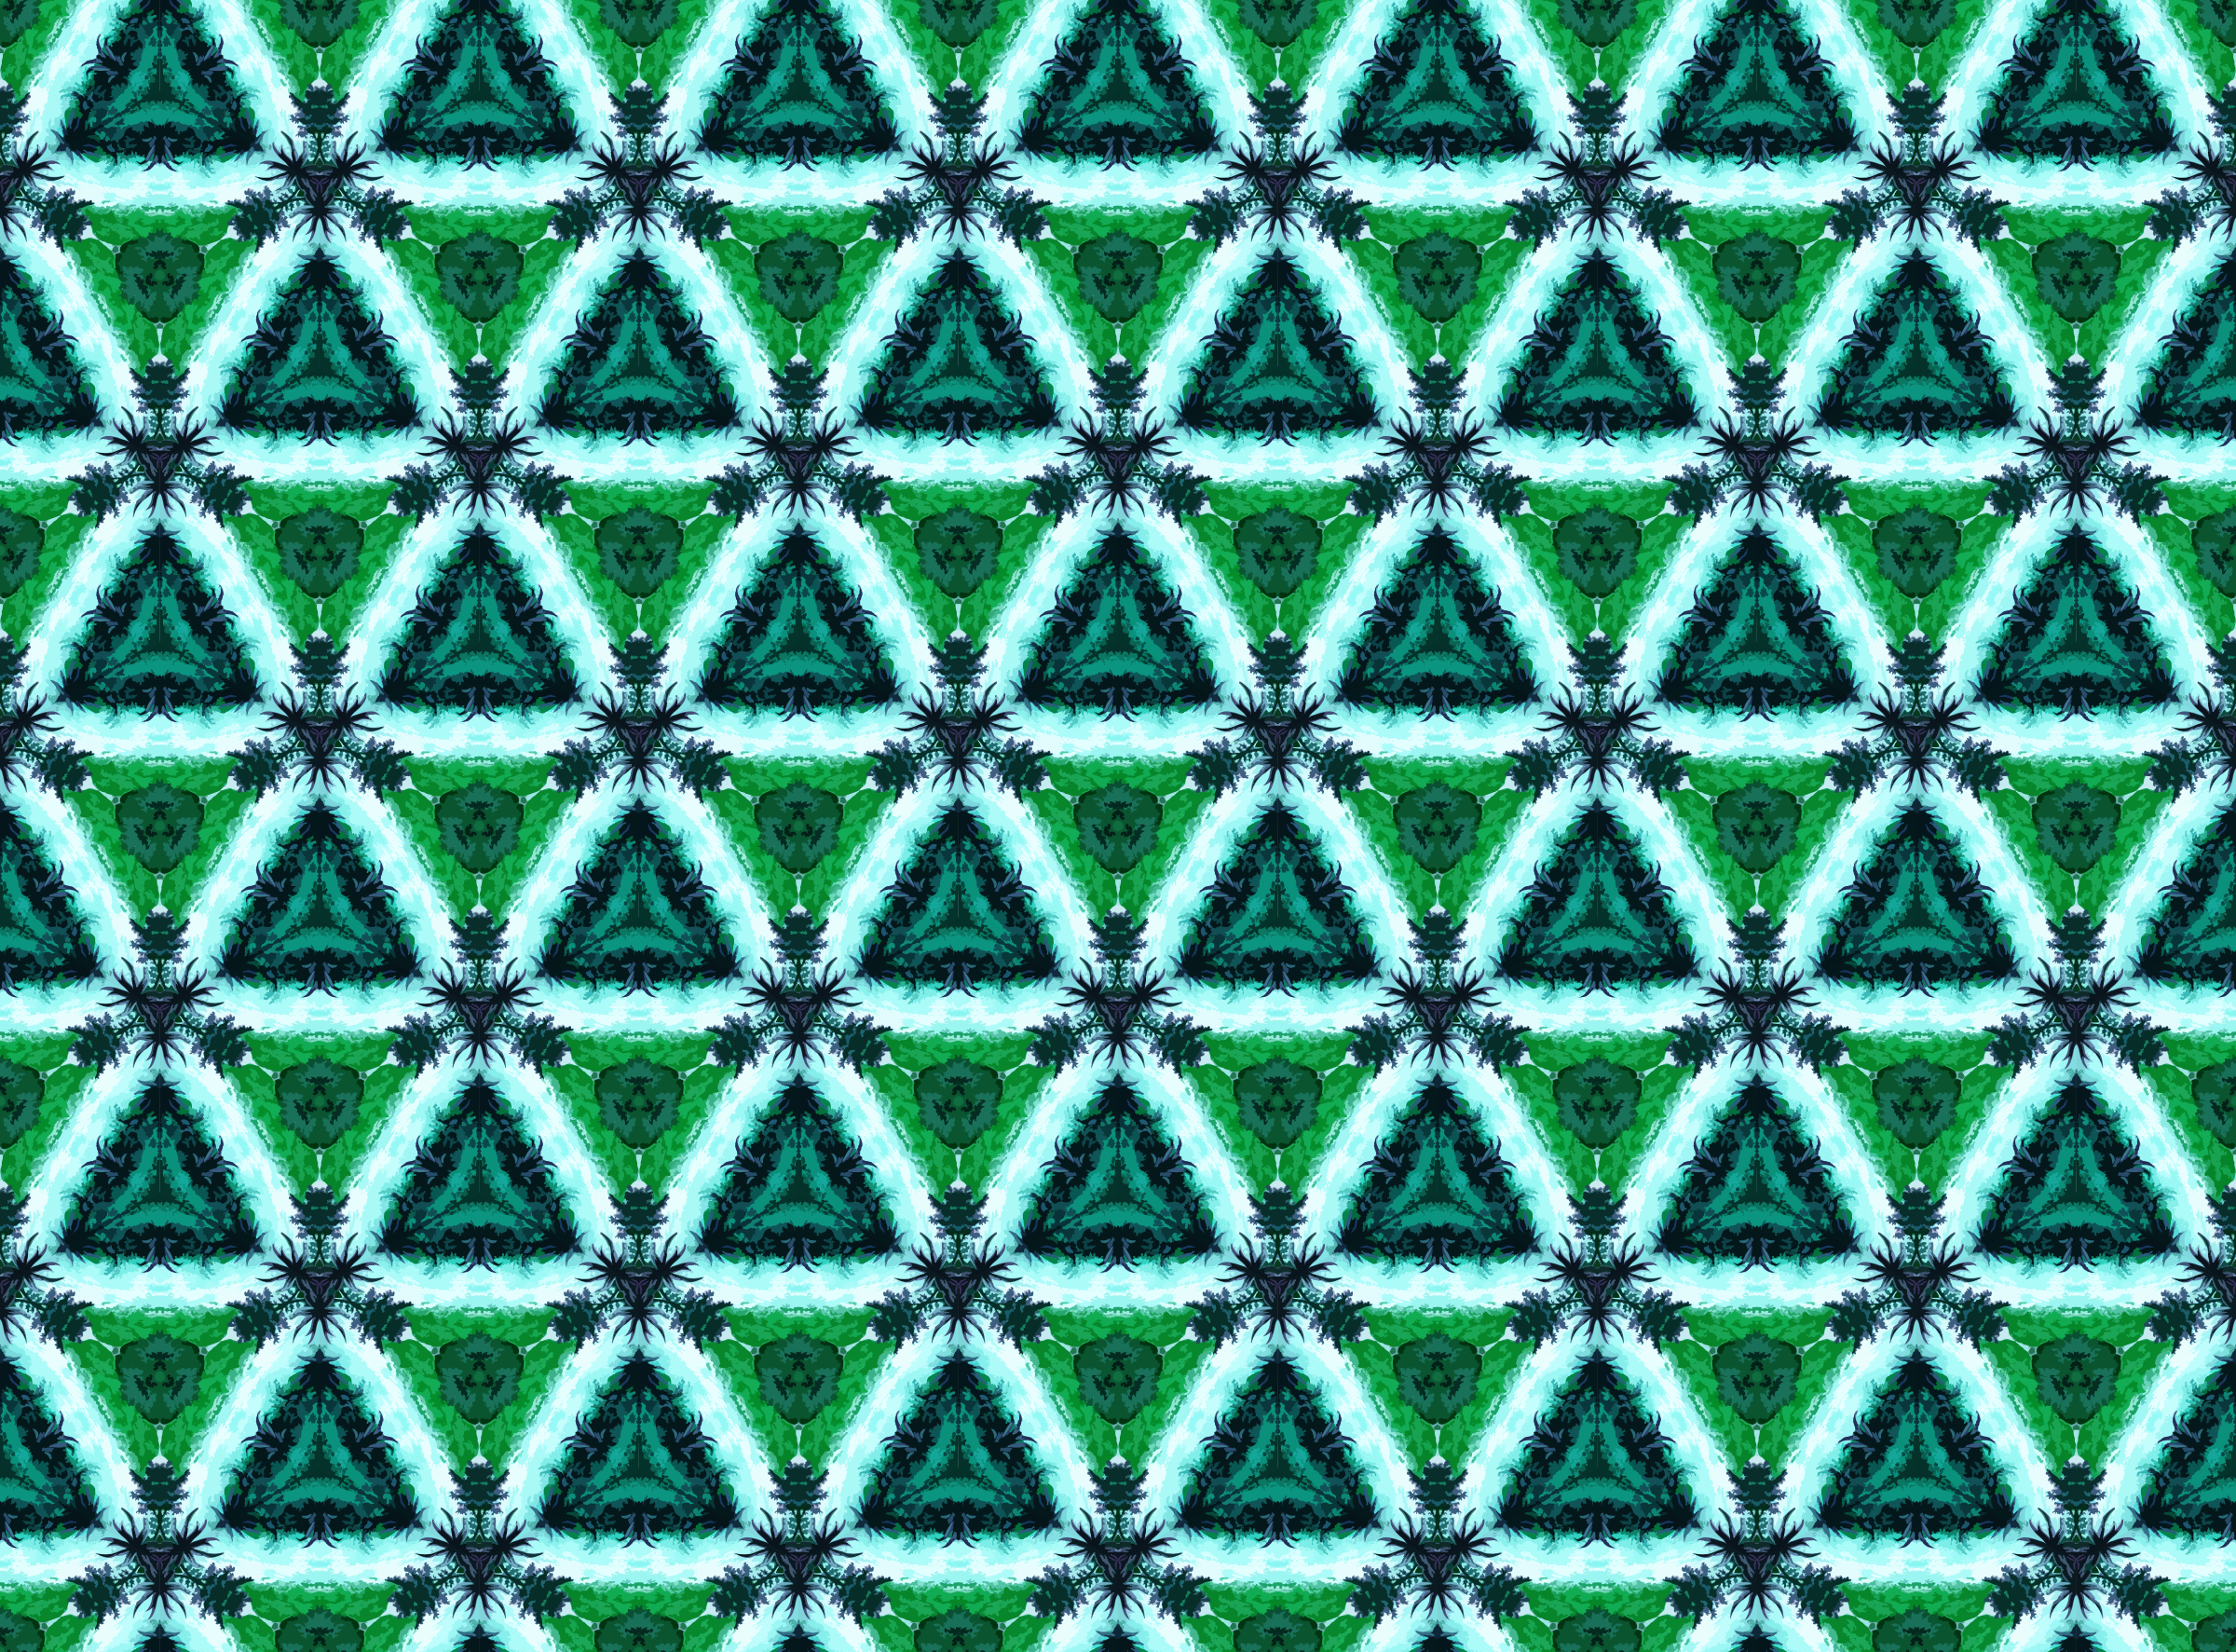 Background pattern 134 (colour 2) by Firkin